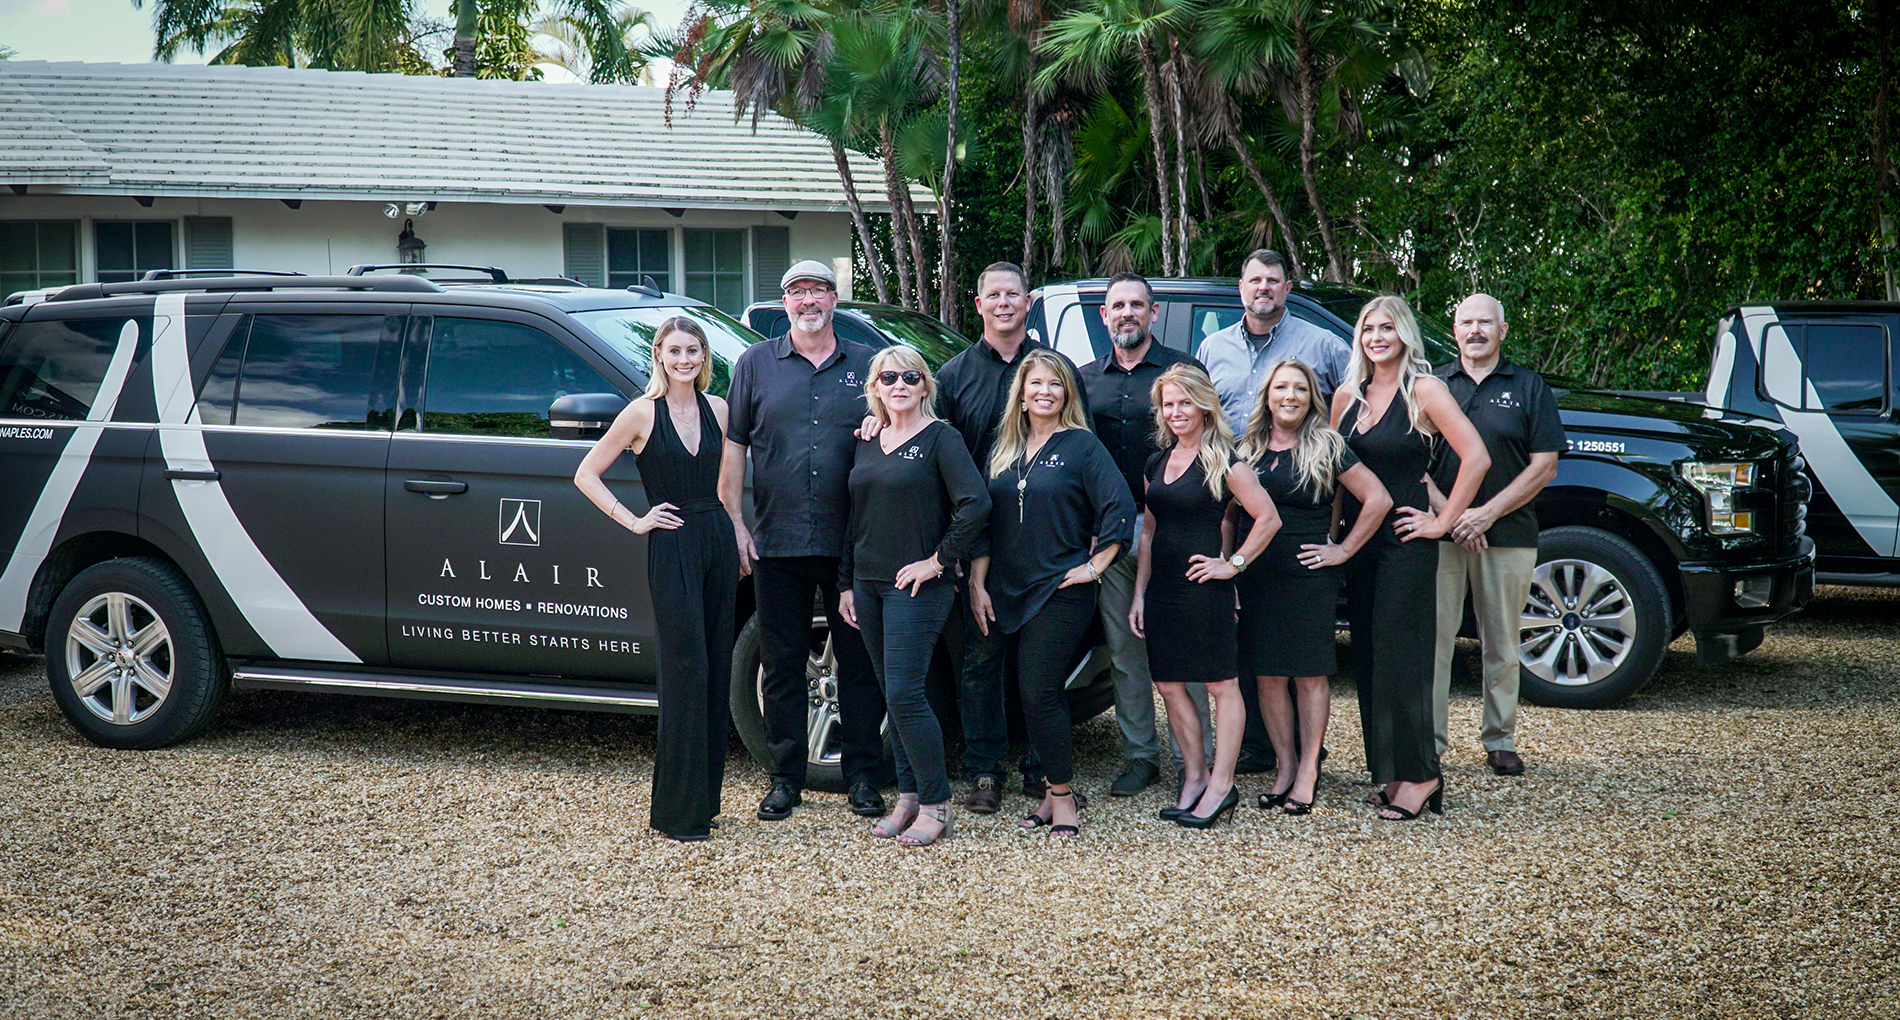 SBC Construction is now Alair Old Naples